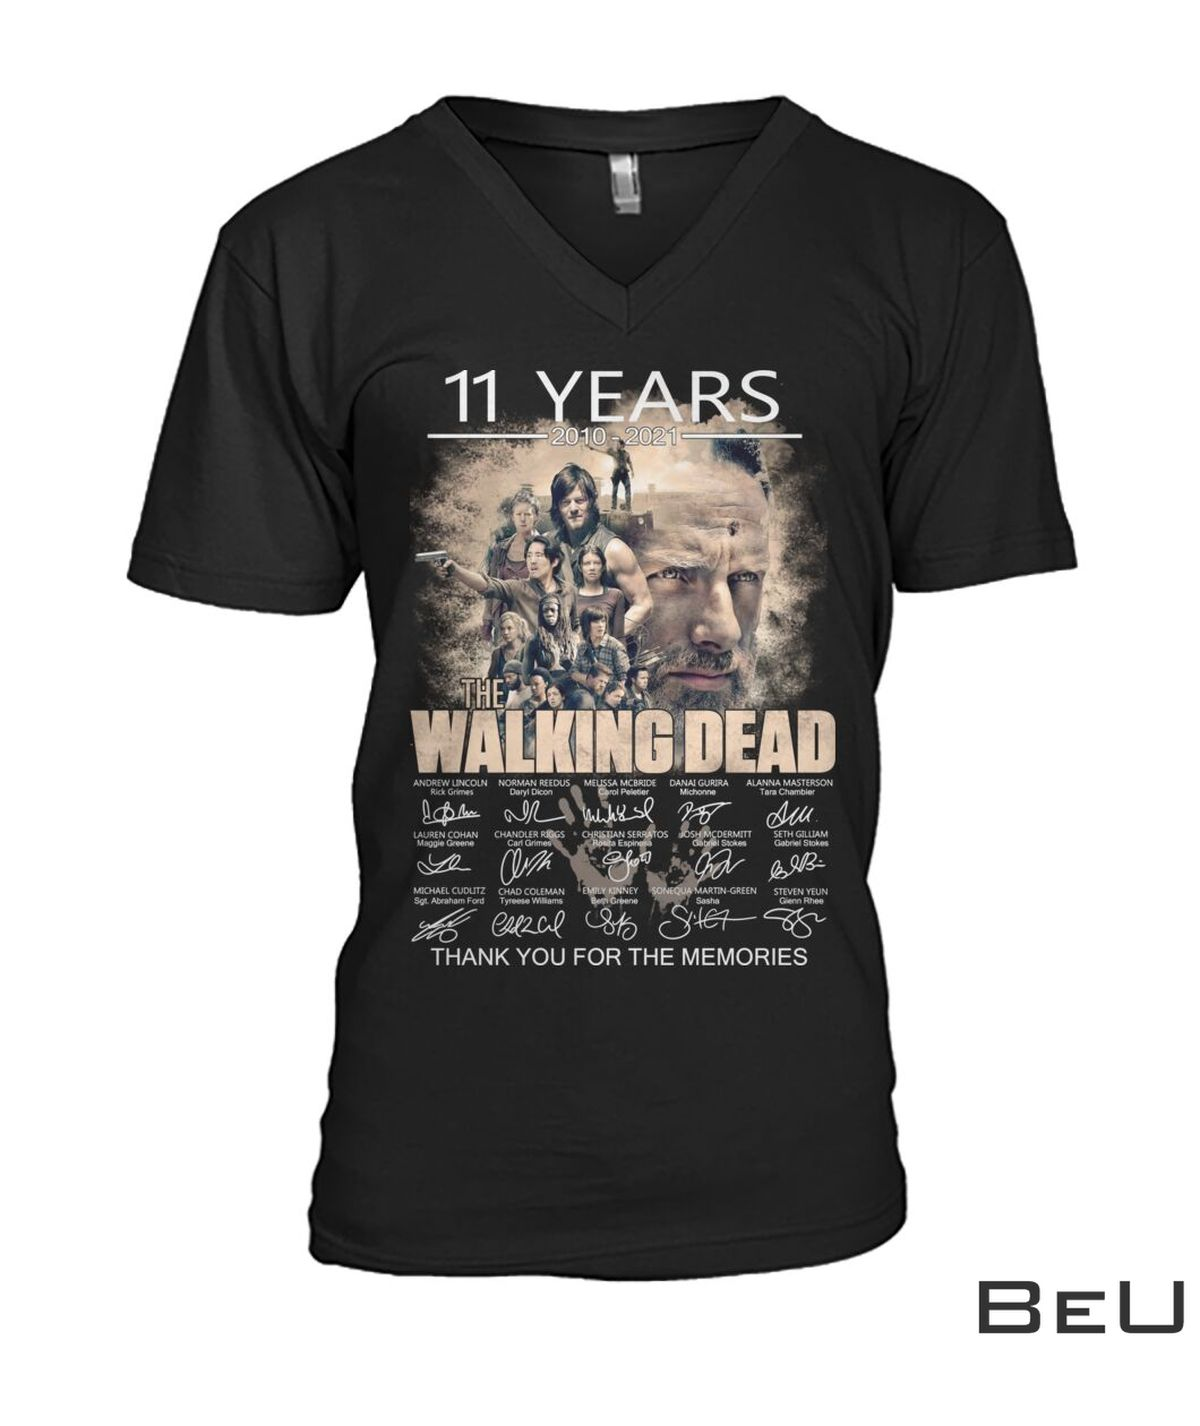 11 Years 2010 2021 The Walking Dead Thank You For The Memories Shirt c